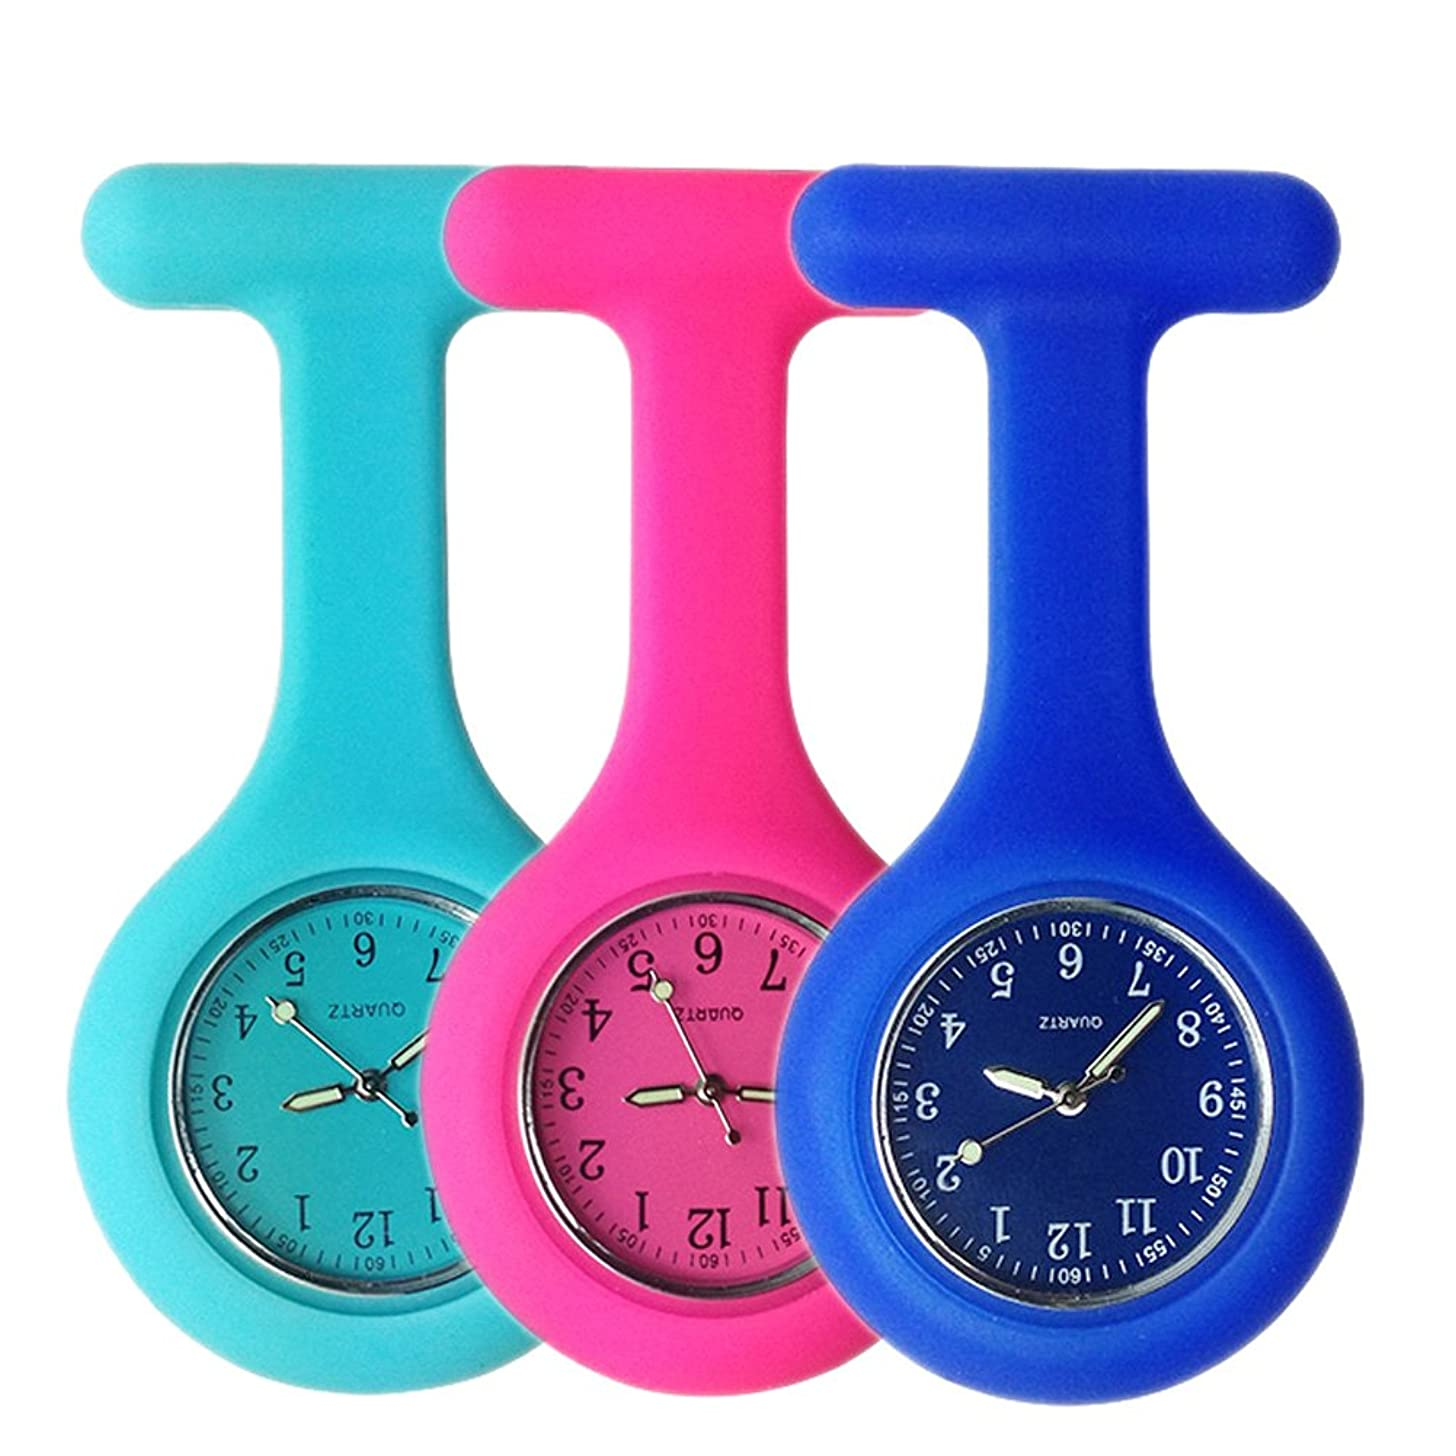 Set of 3 Nurse Watch Brooch, Silicone with Pin/Clip, Glow Pointer in Dark, Infection Control Design, Health Care Nurse Doctor Paramedic Medical Brooch Fob Watch - Blue Rose Navy